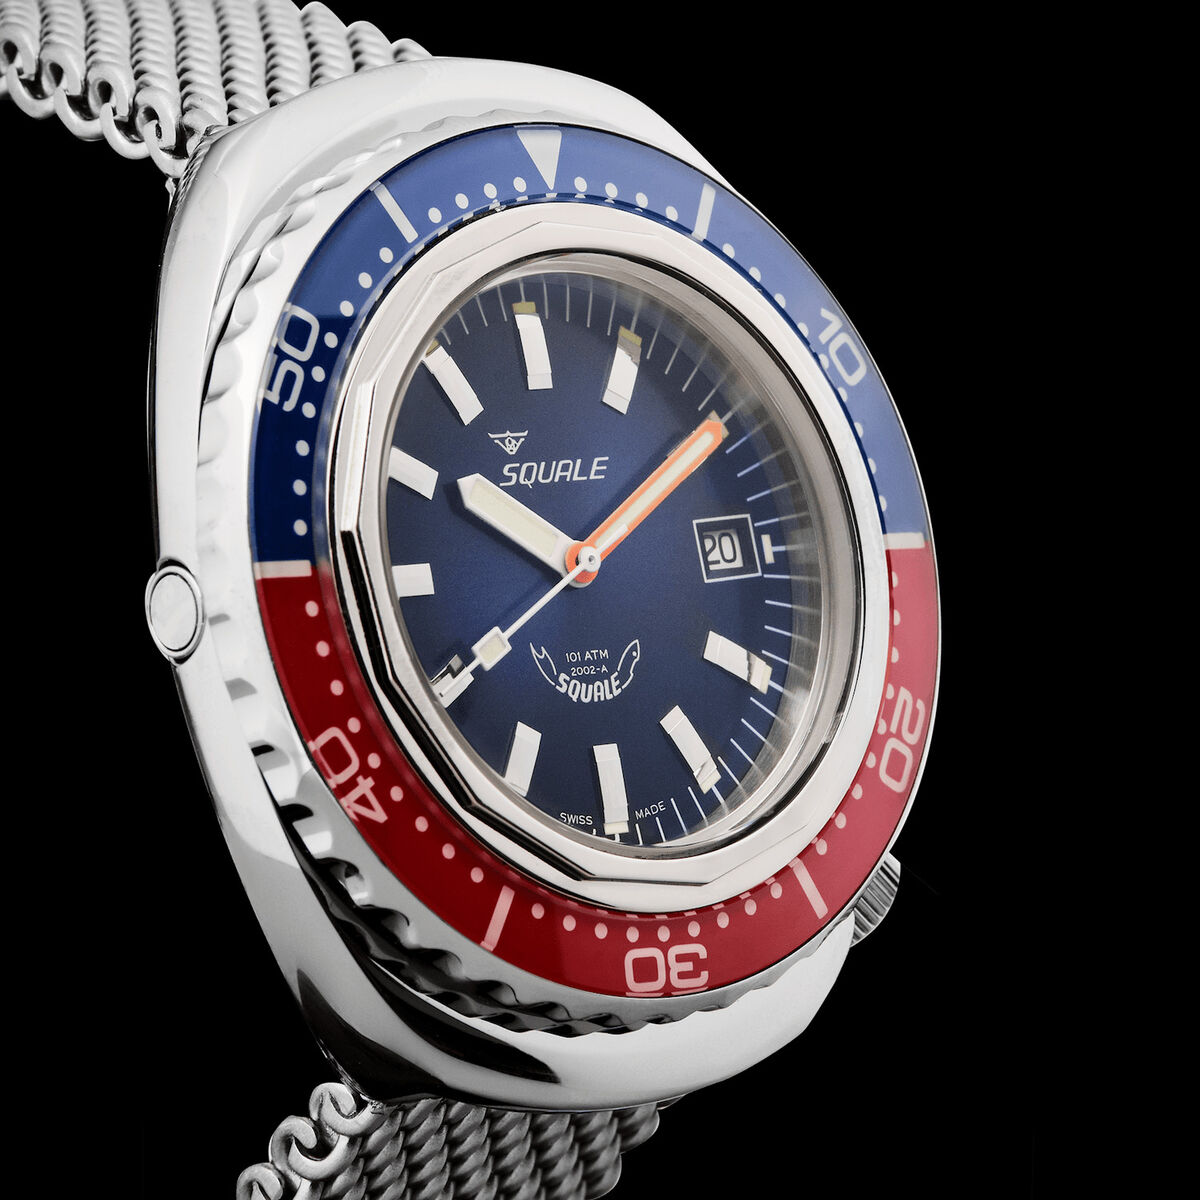 Squale Blue-Red 101 atmos 2002 Dive Watch Released